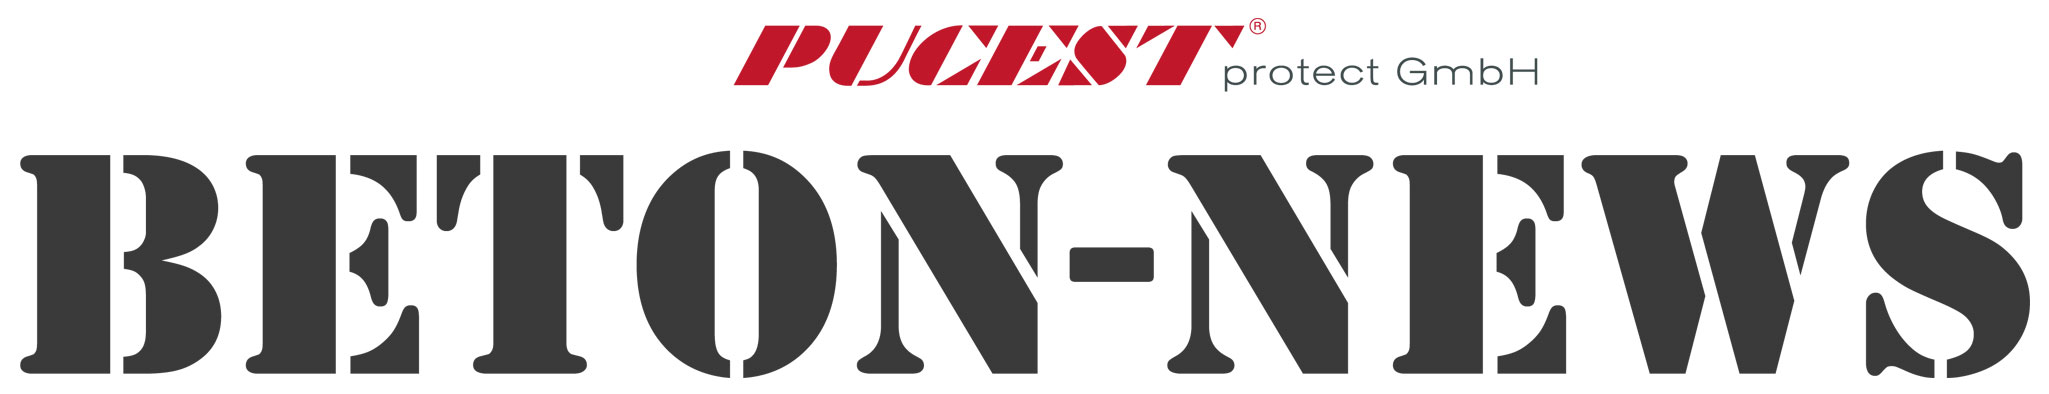 PUCEST protect GmbH